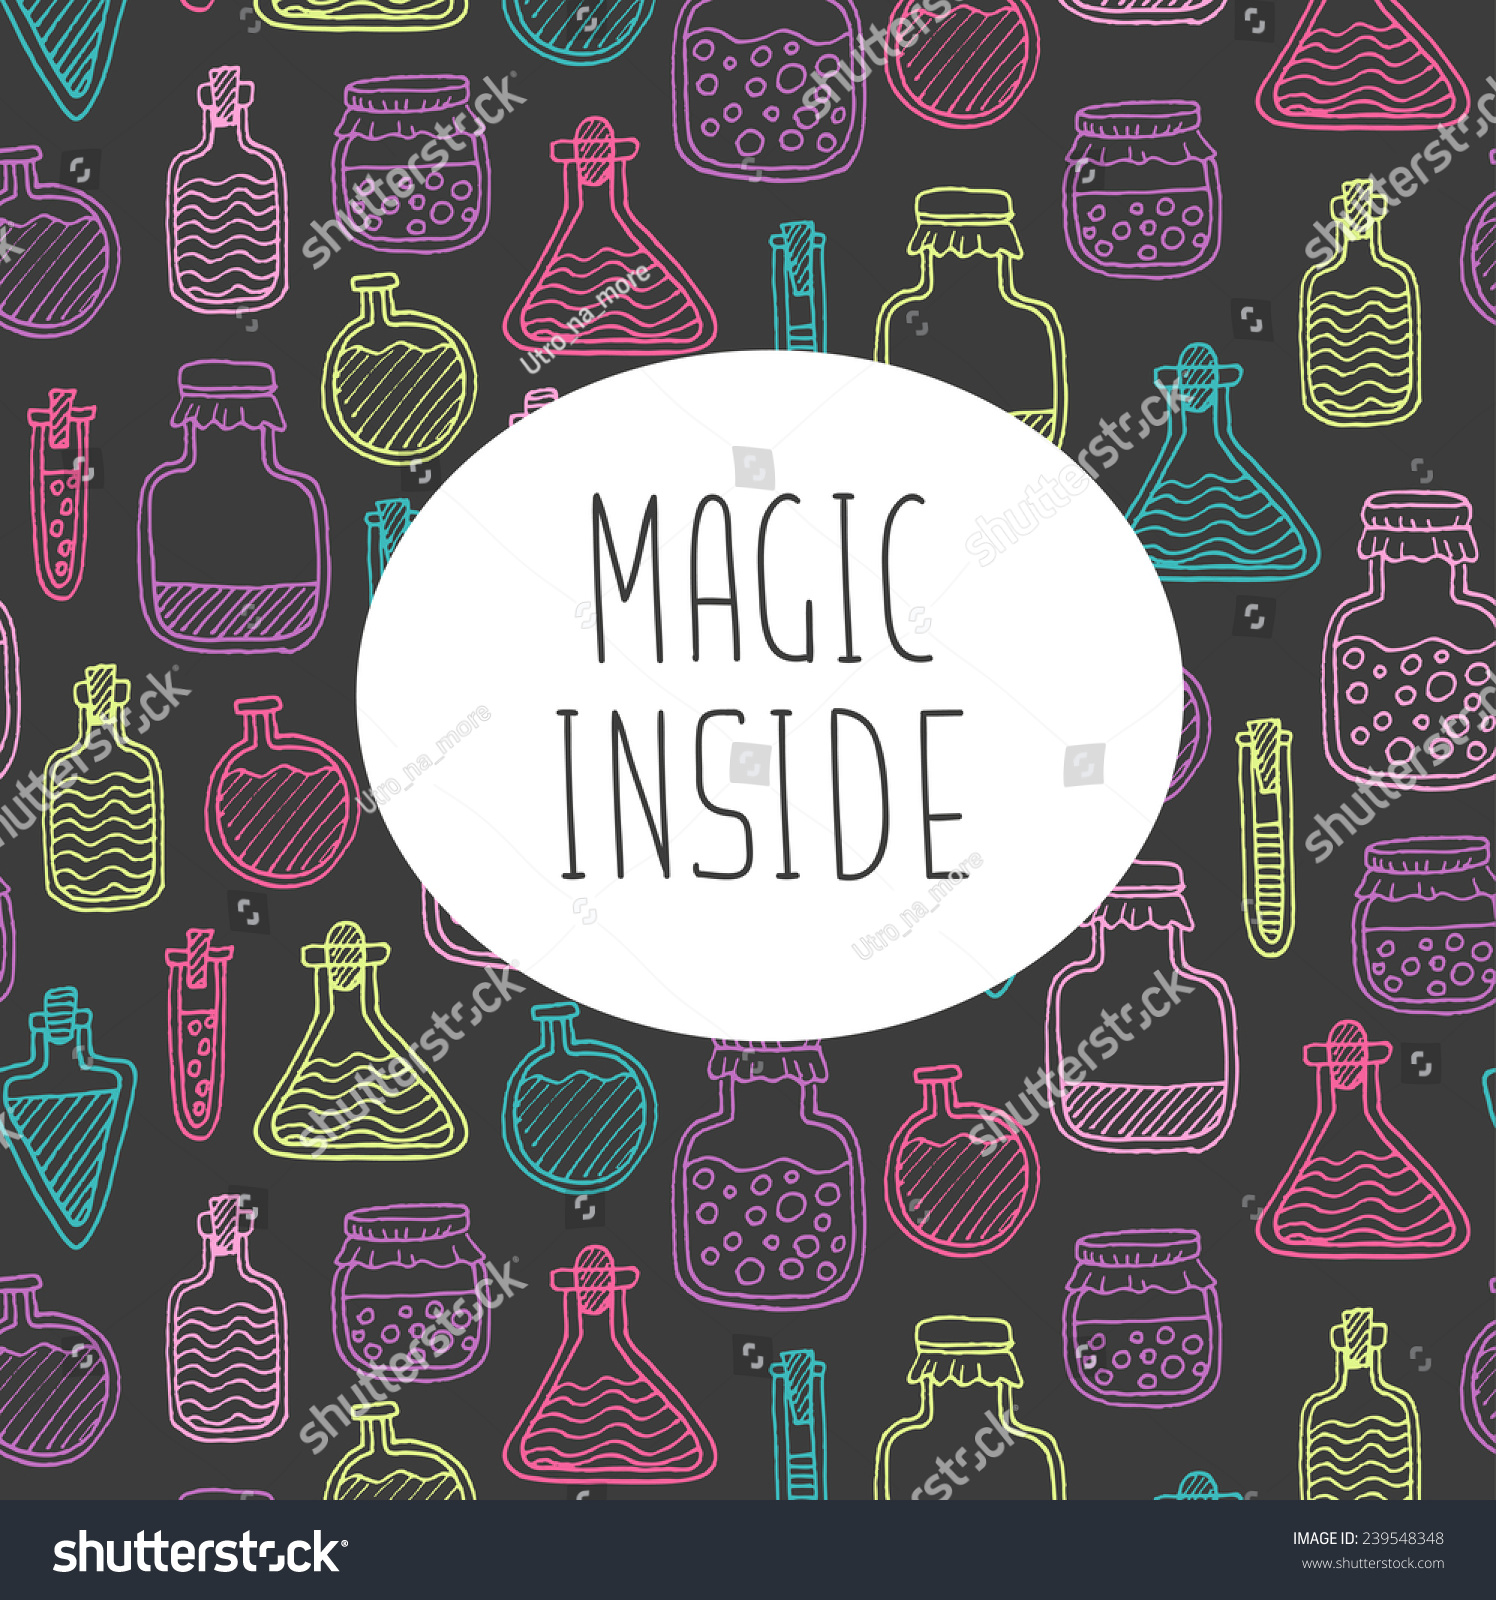 Alchemy magic craft greeting card stock vector 239548348 shutterstock alchemy magic craft greeting card kristyandbryce Images